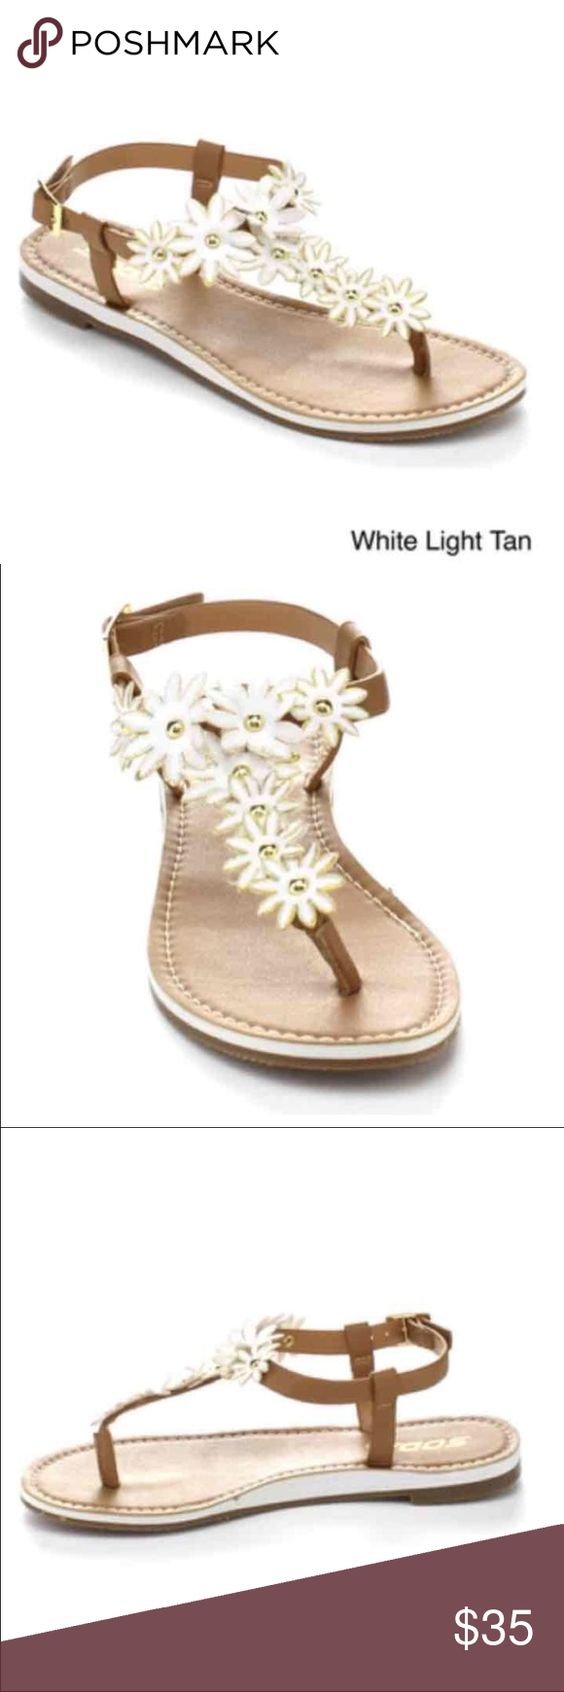 SODA White Flower Sandals Cute white sandals with stud flowers! Soda Shoes Sandals